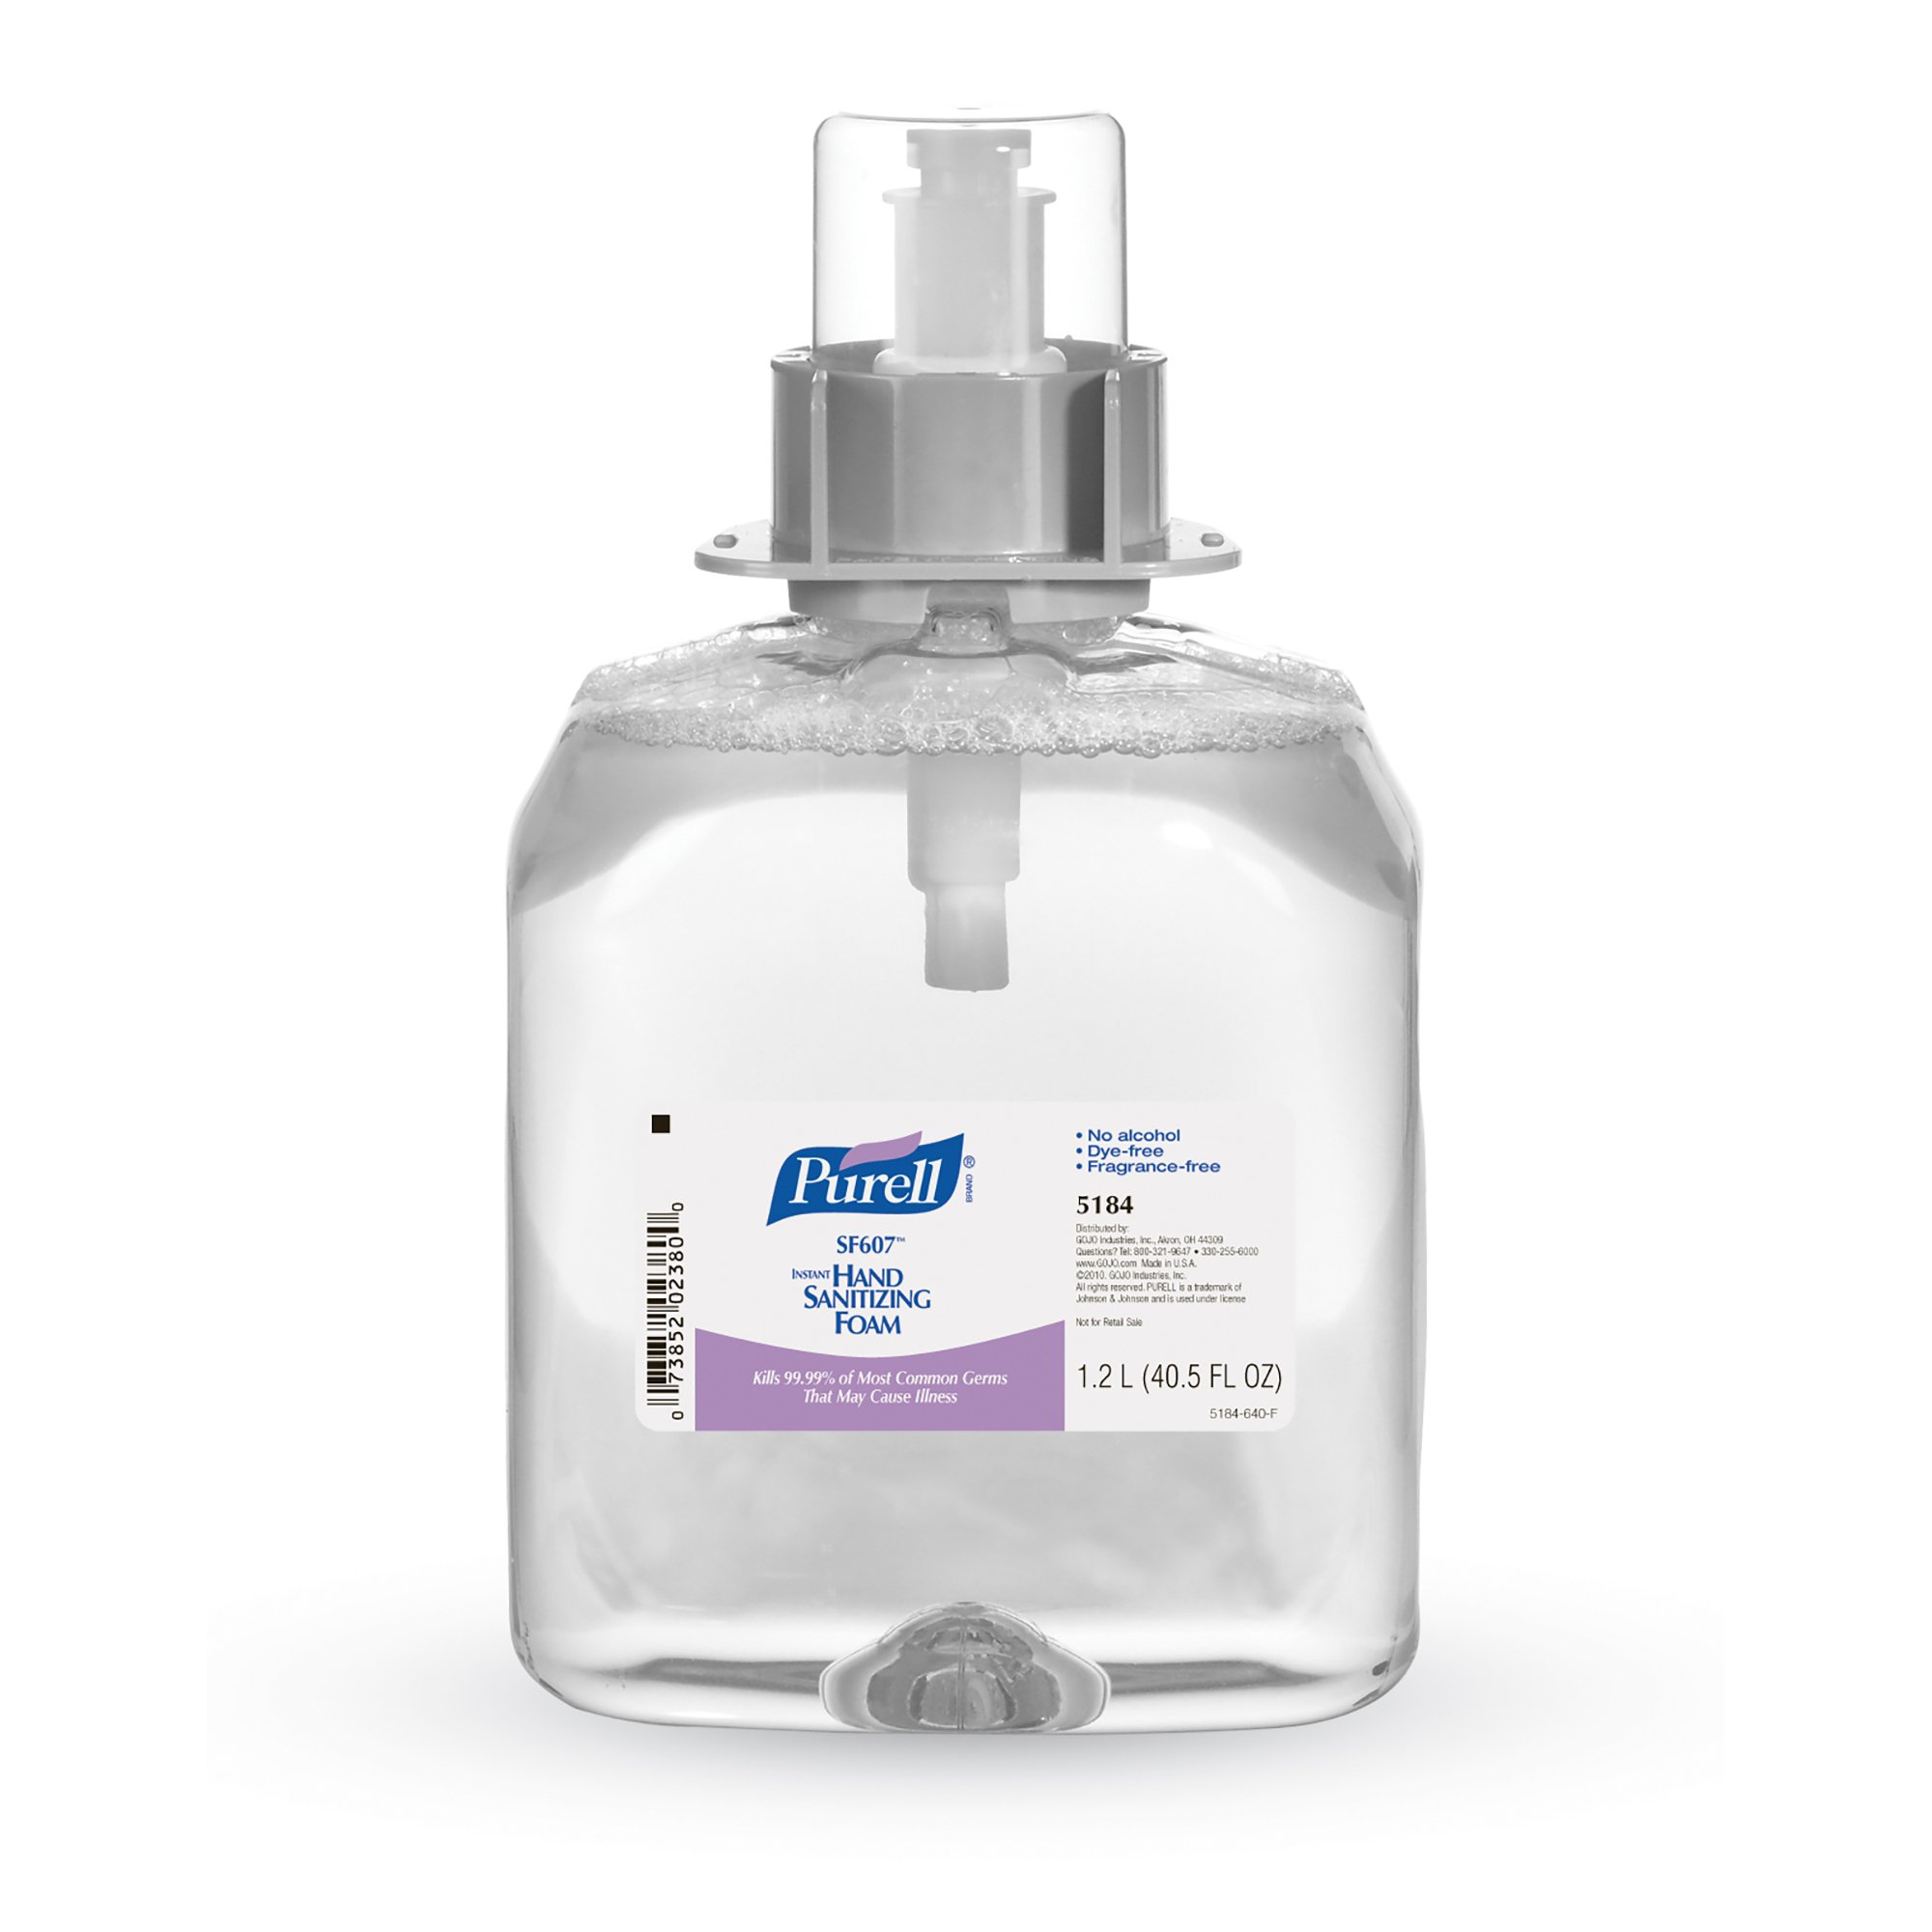 PURELL 5184-03 SF607 Instant Hand Sanitizing Foam, 1200 mL Refill (Pack of 3)